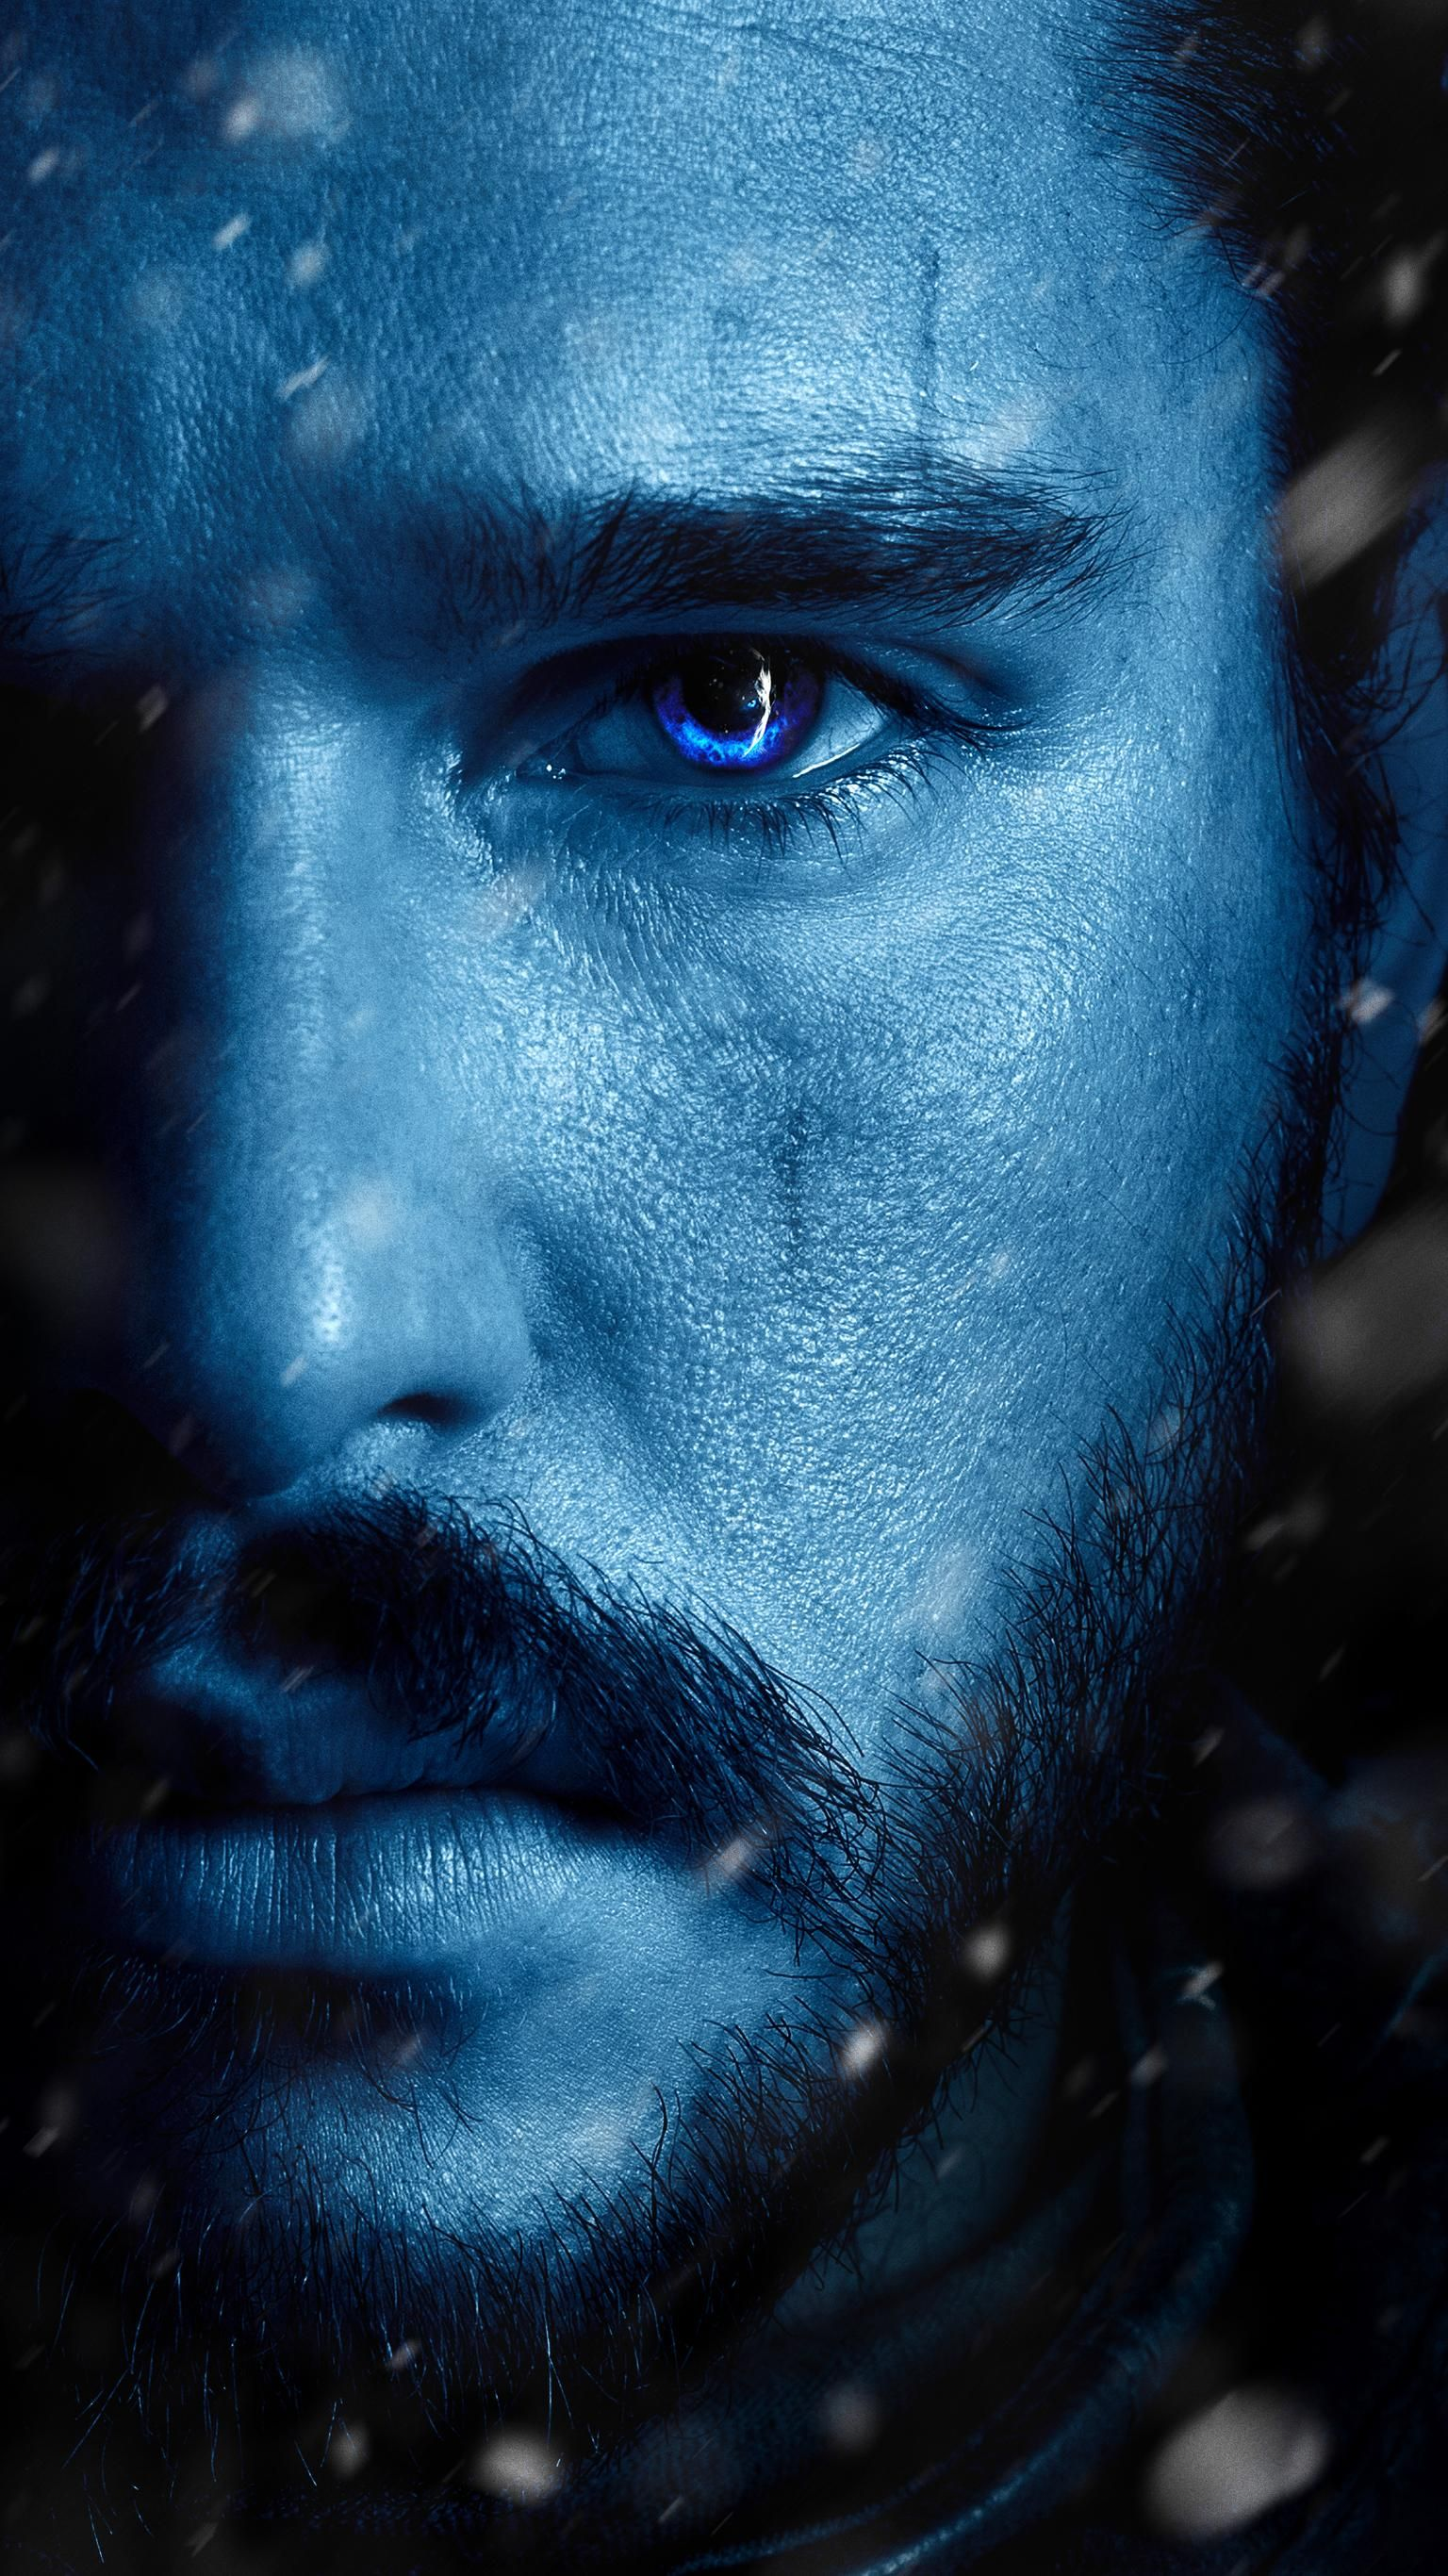 Game Of Thrones Phone Wallpaper Moviemania Game Of Thrones Poster Jon Snow Free Poster Printables